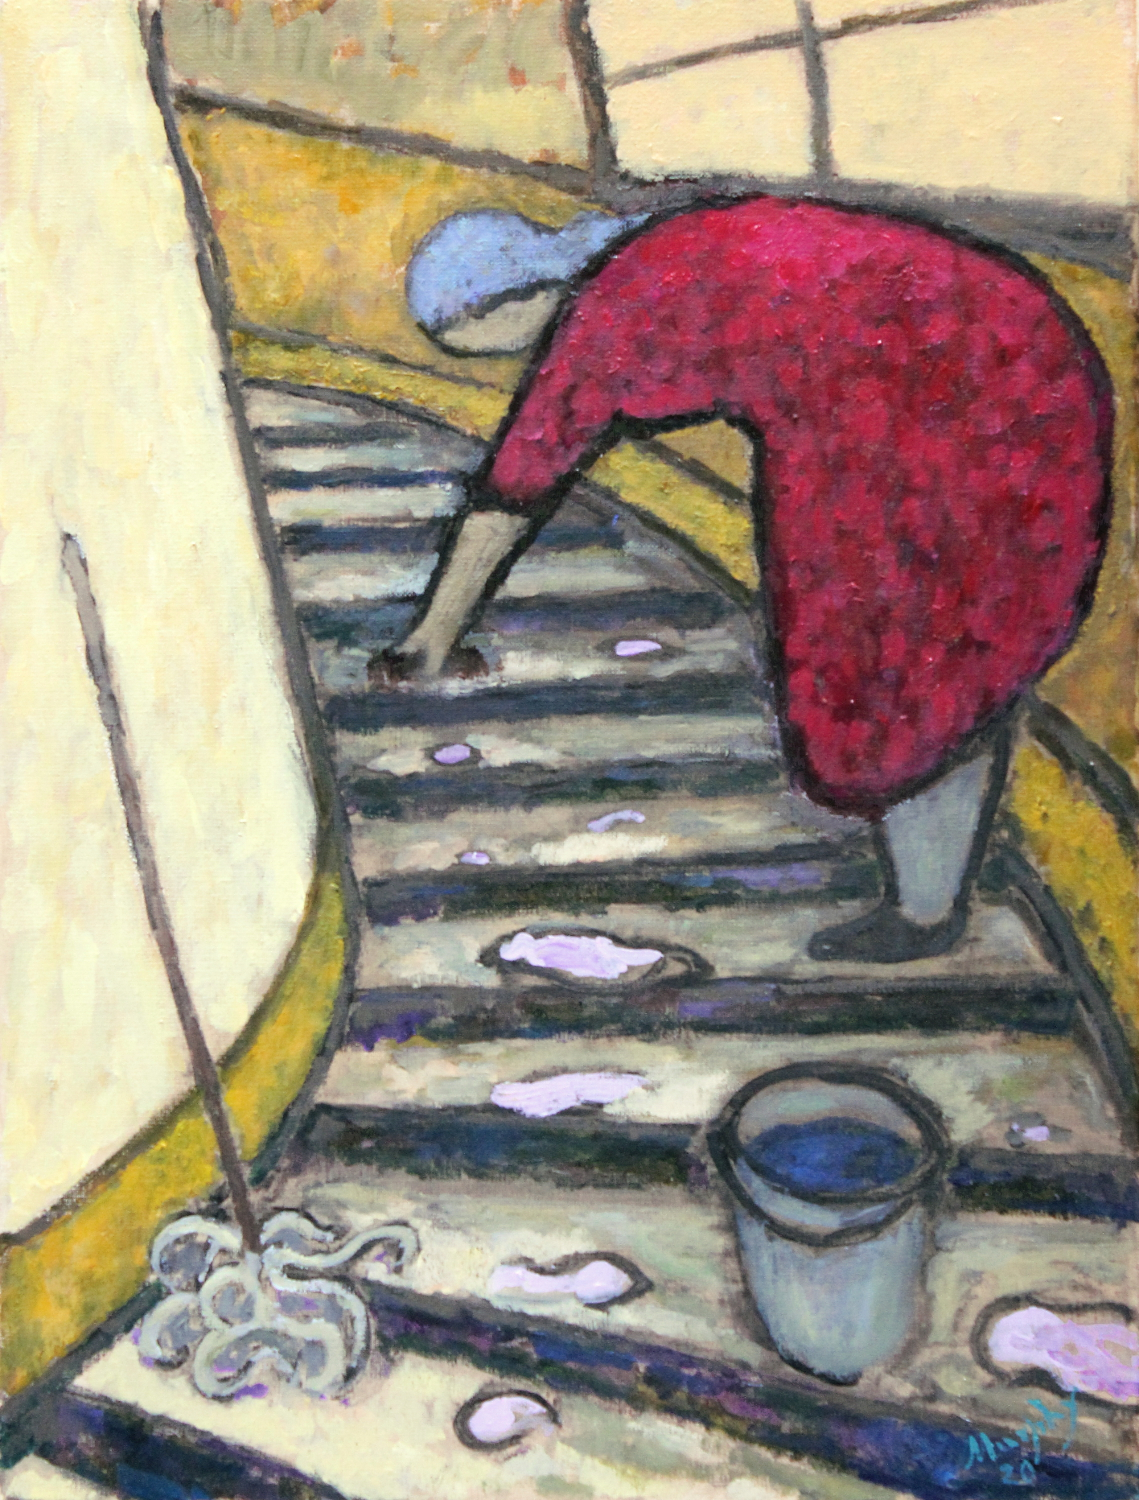 The-Endless-Stair-61-x-46-cm-oil-on-canvas-web